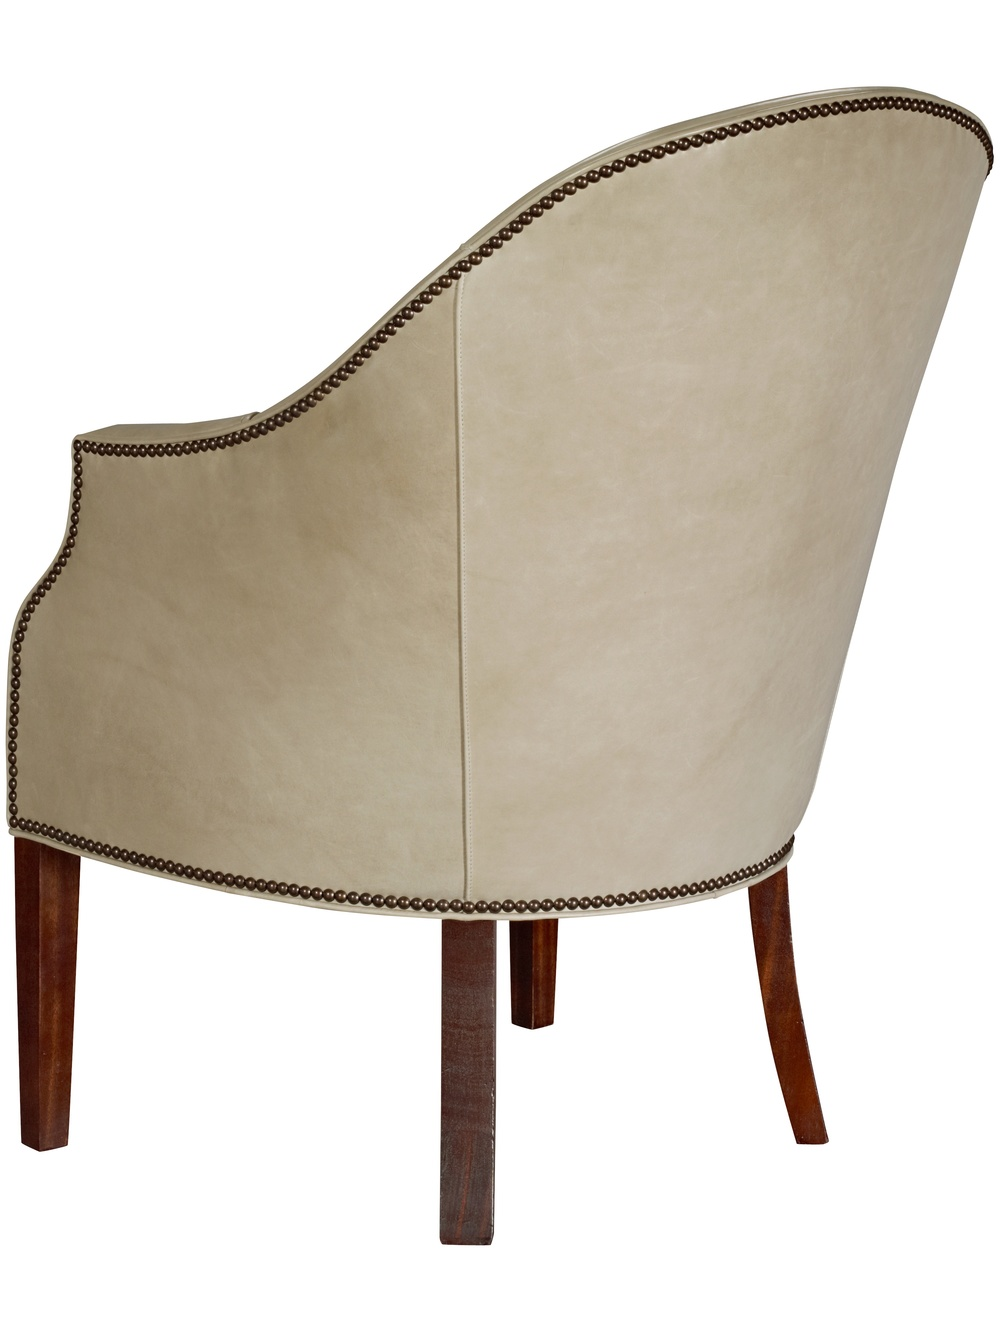 Hickory Chair - Victorine Chair